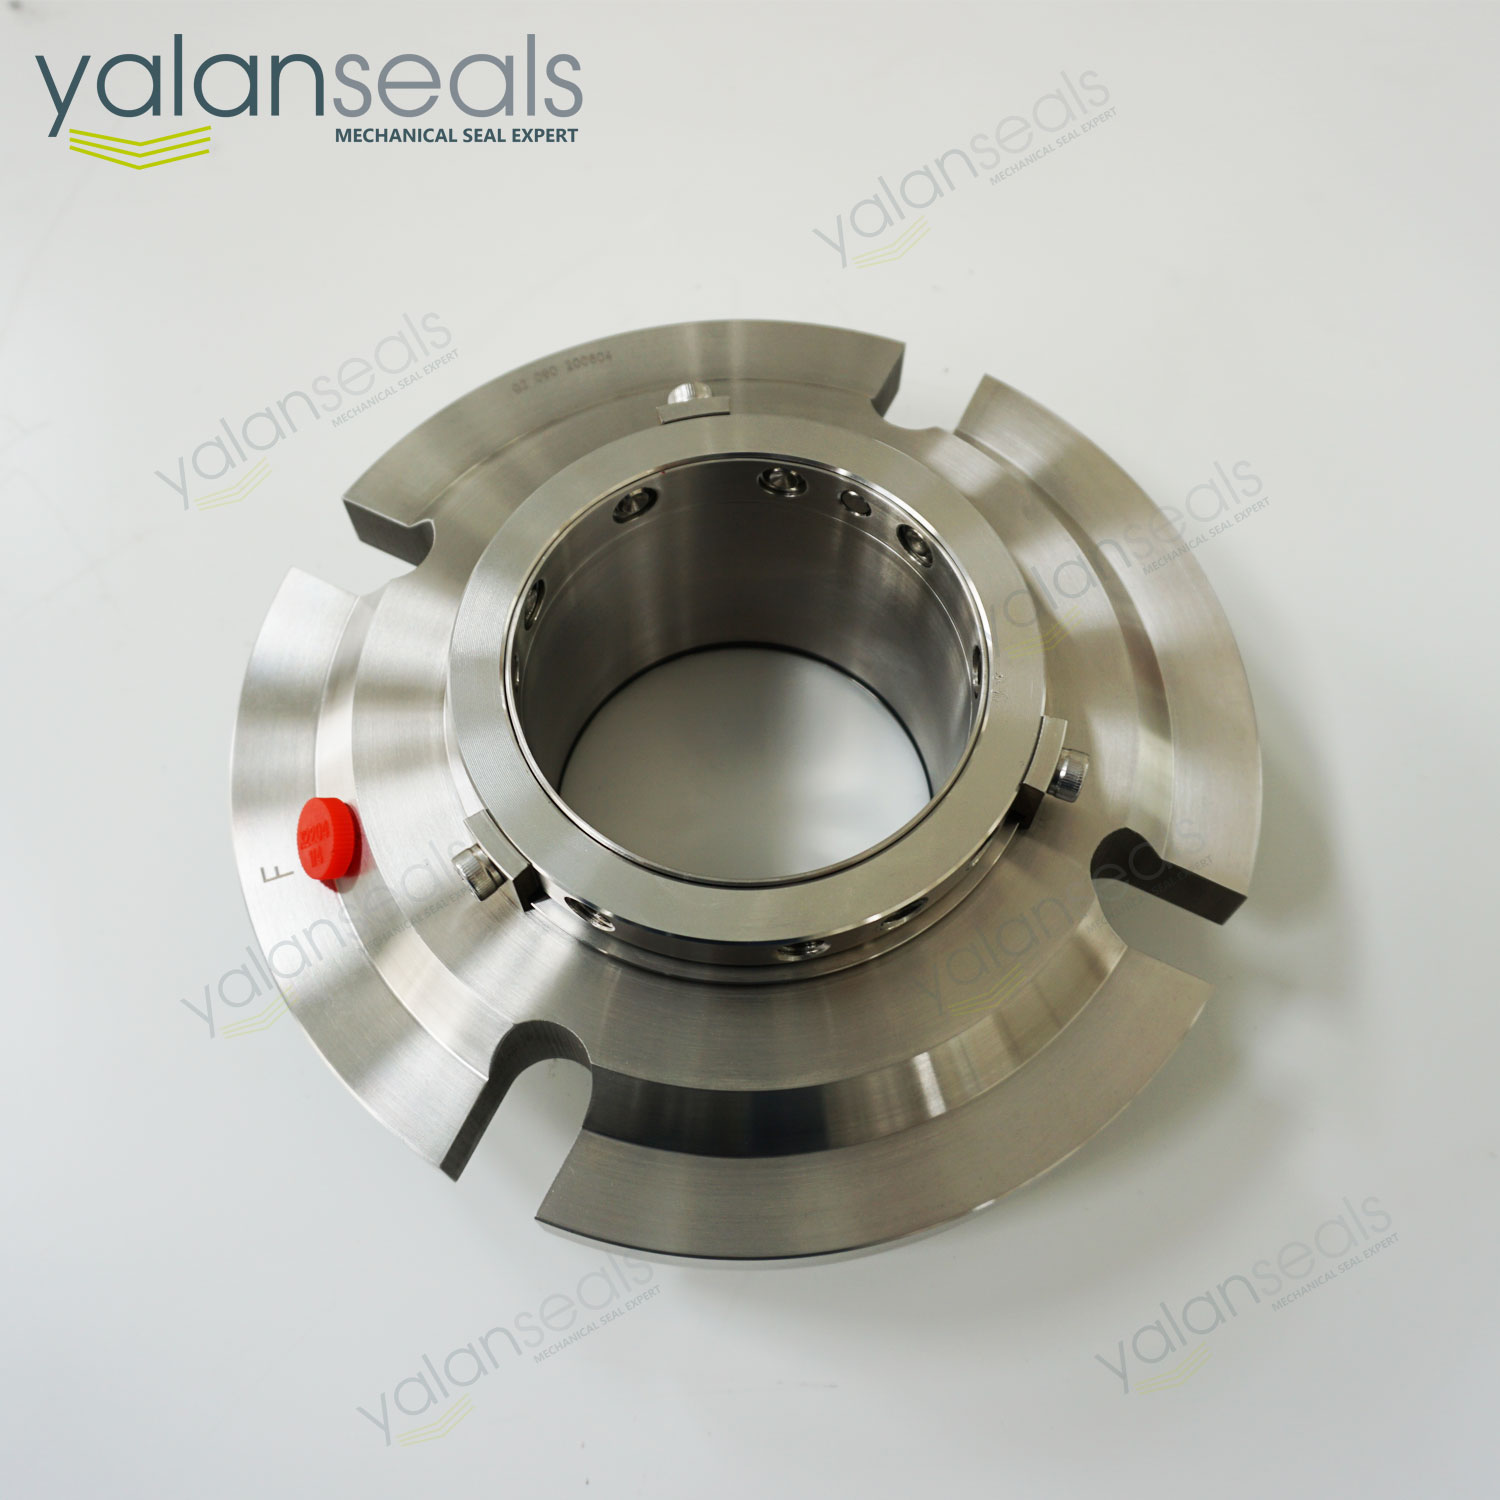 YALAN Retrofit Mechanical Seals for AES CSSN Single Cartridge Seals for Pulp Pumps and Chemical Pumps